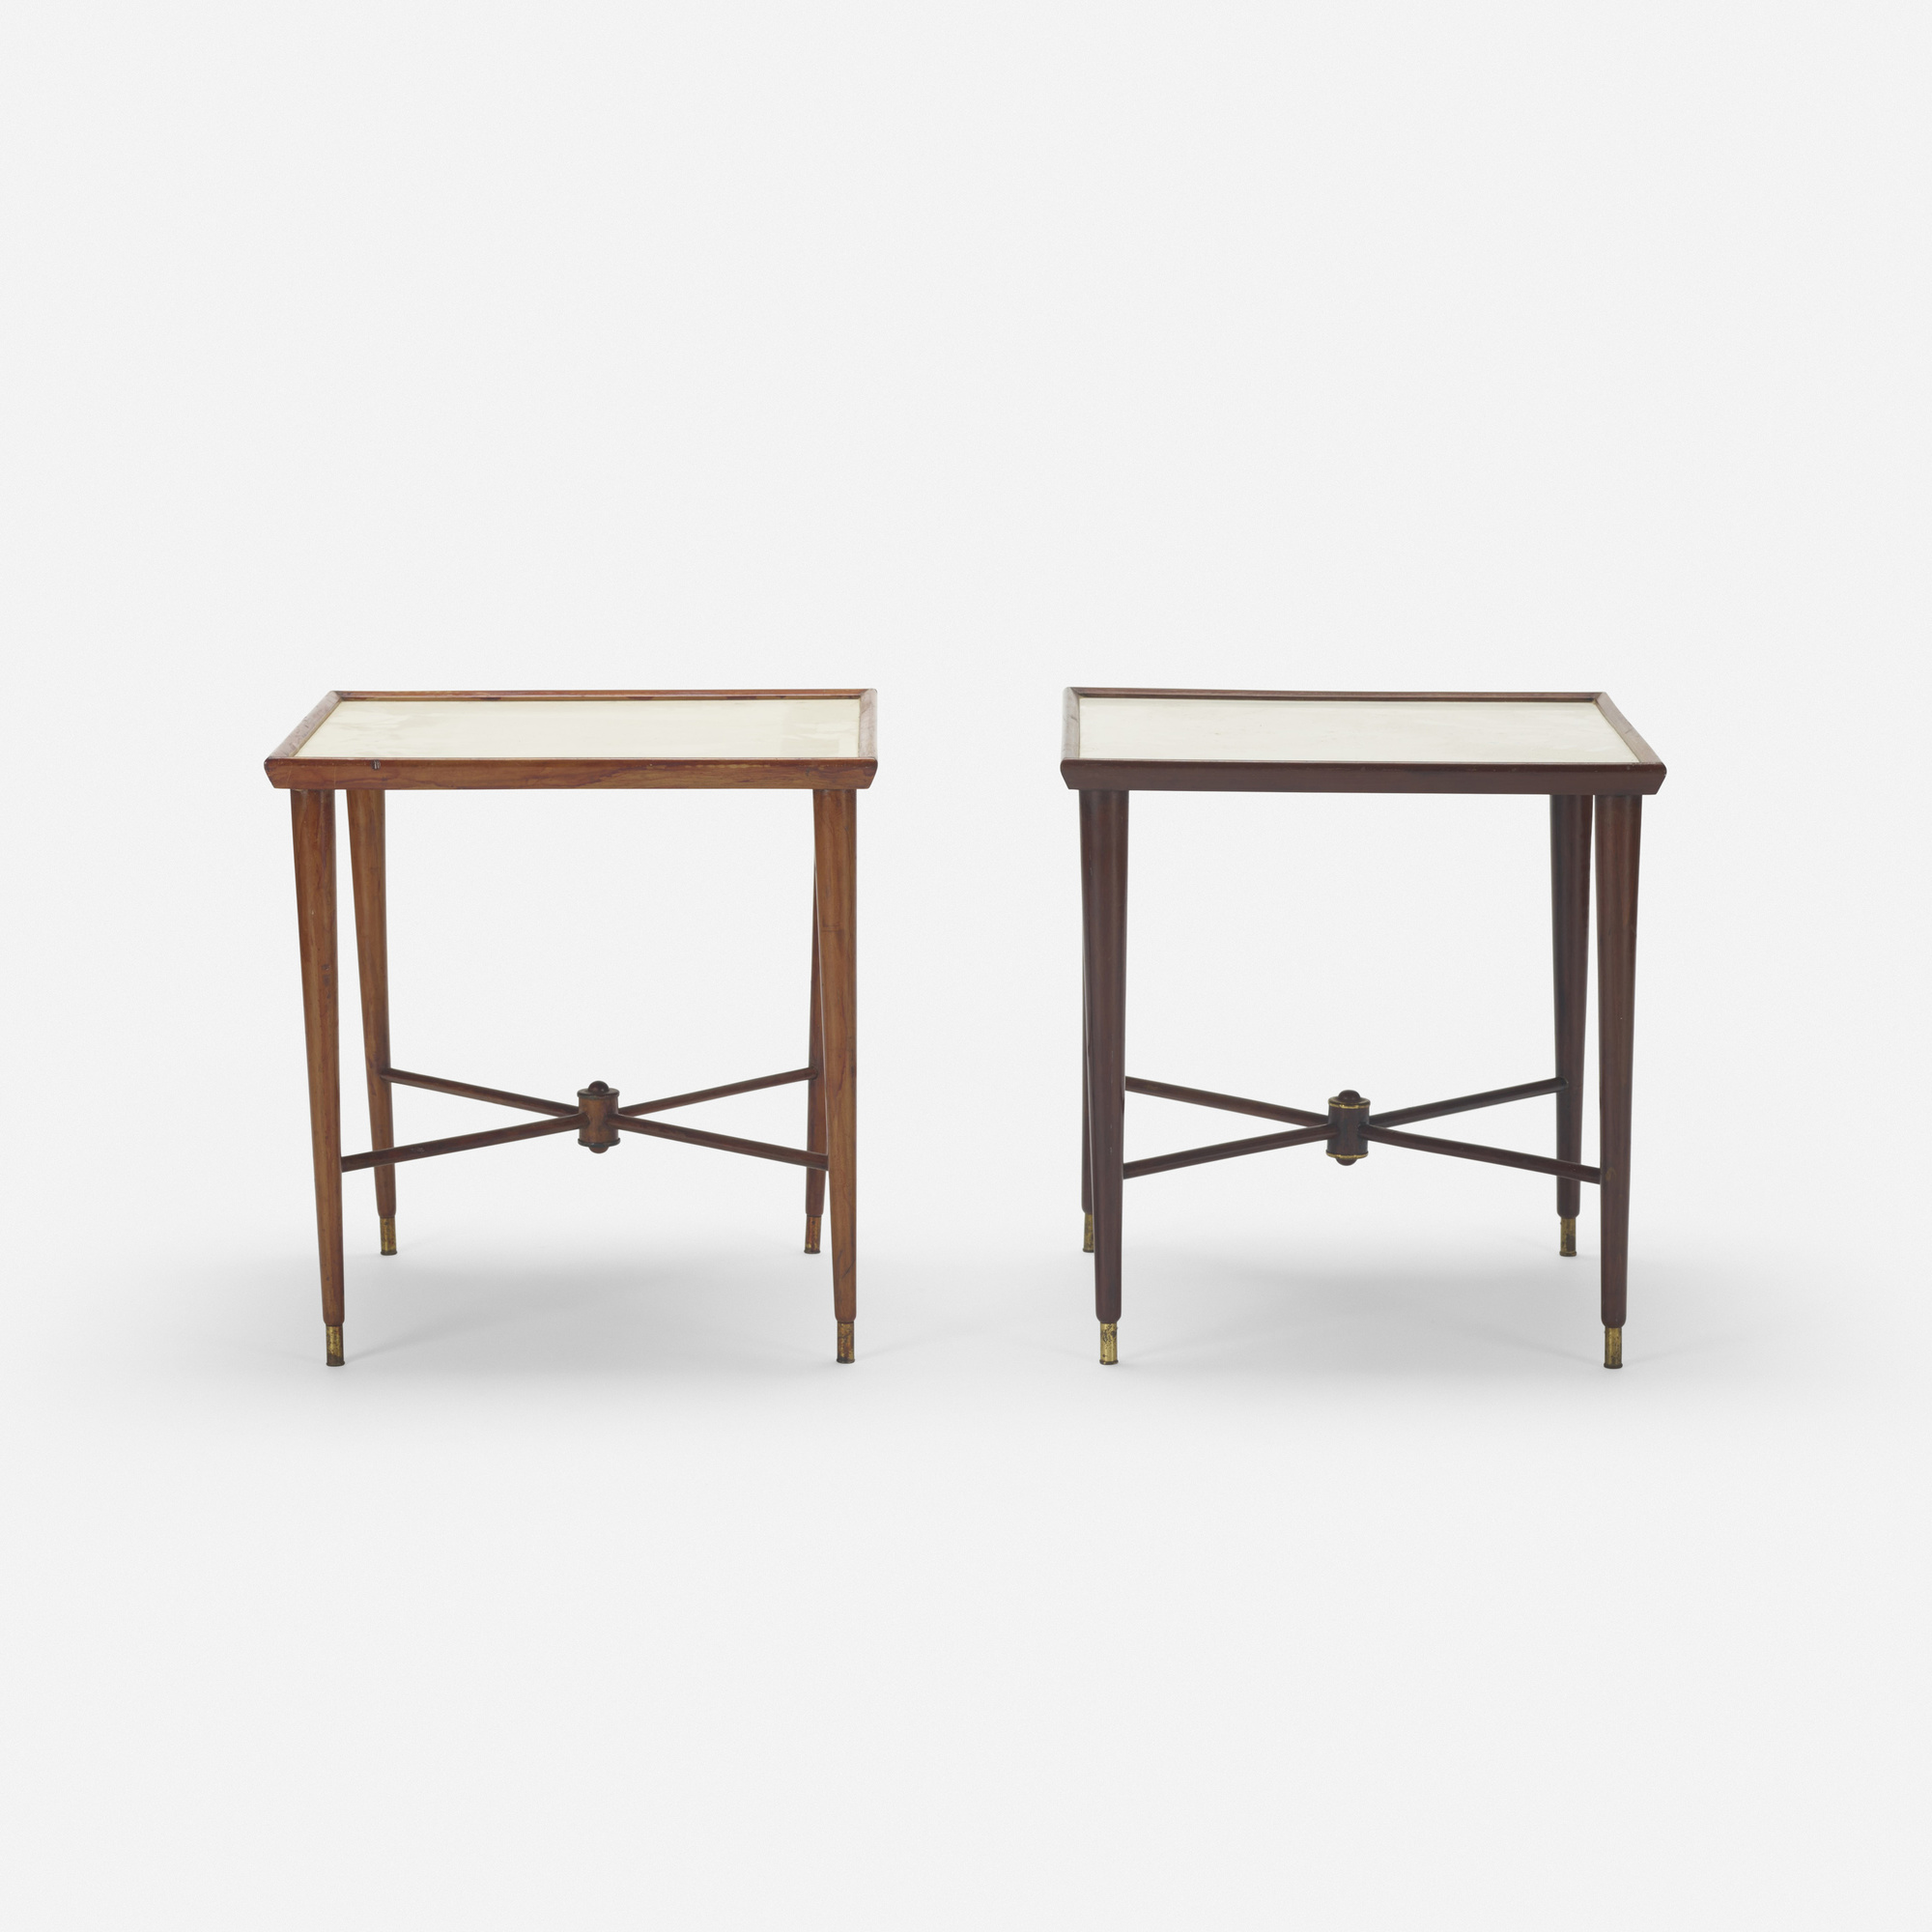 226: Brazilian / occasional tables, pair (2 of 2)